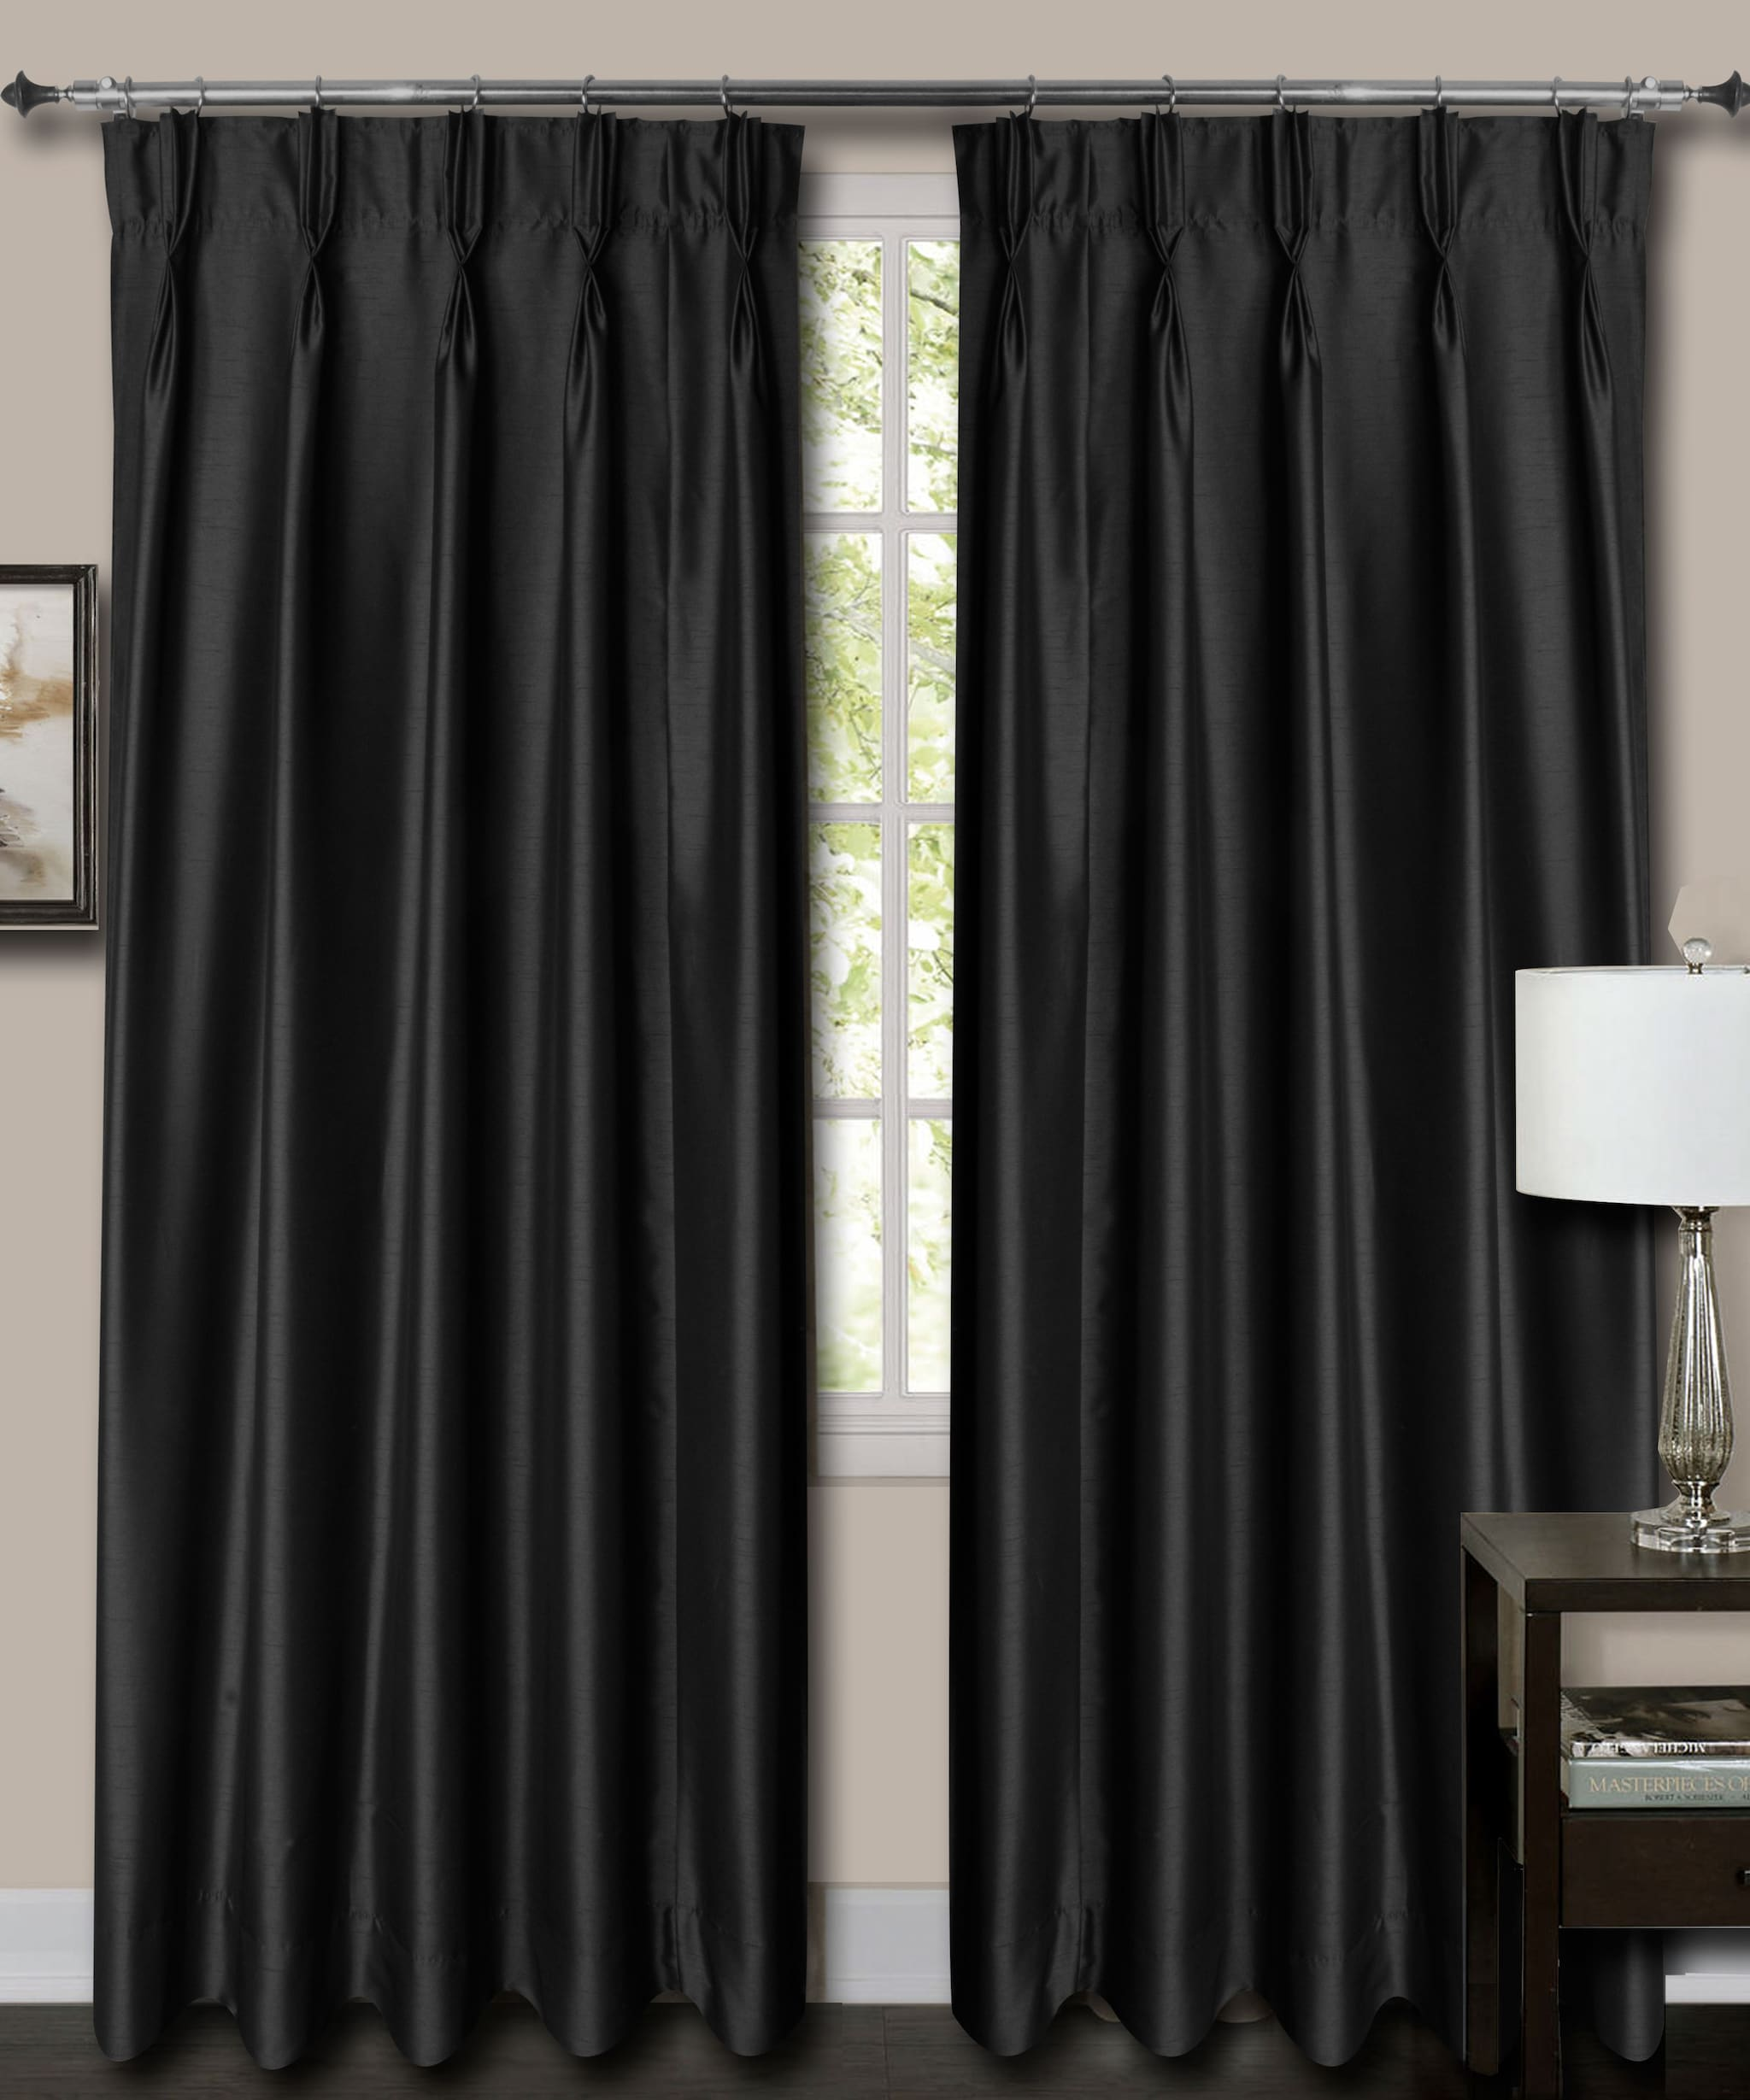 "French Pleat Top Black Faux Silk Dupioni Curtains. (39"" Wide,7 Feet Long,Without Lining)"